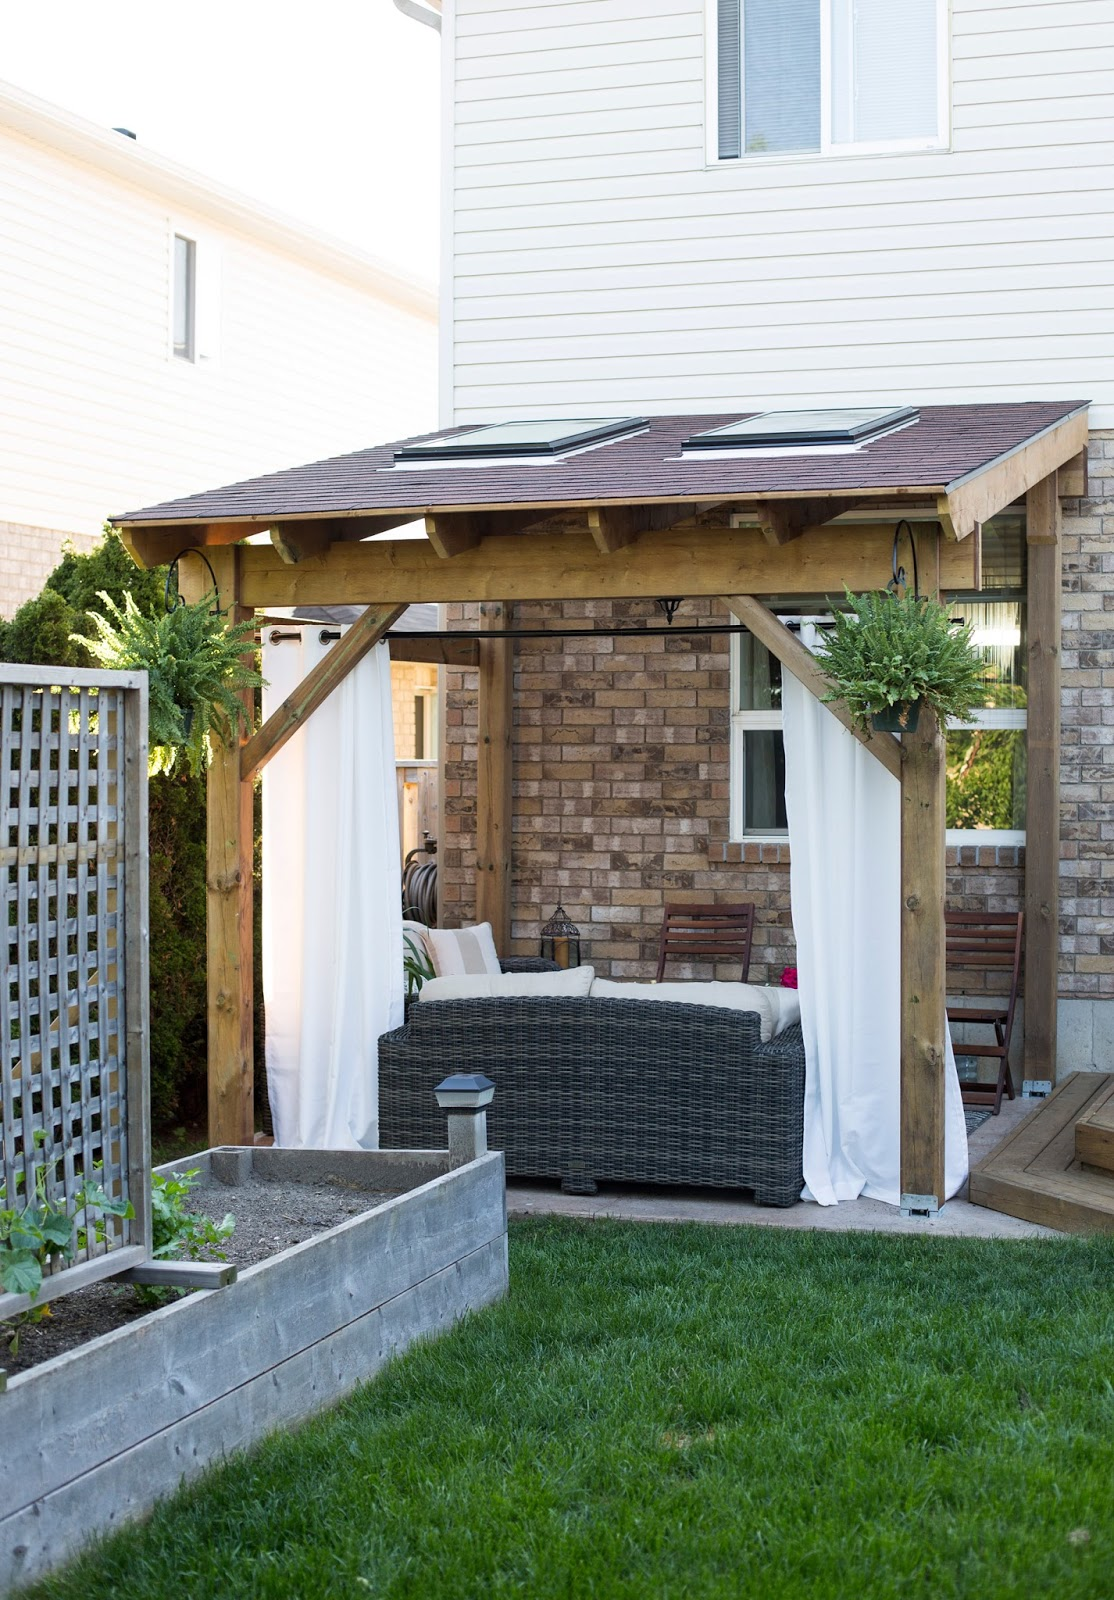 hdblogsquad how to build a covered patio brittany stager ForBuild Covered Patio